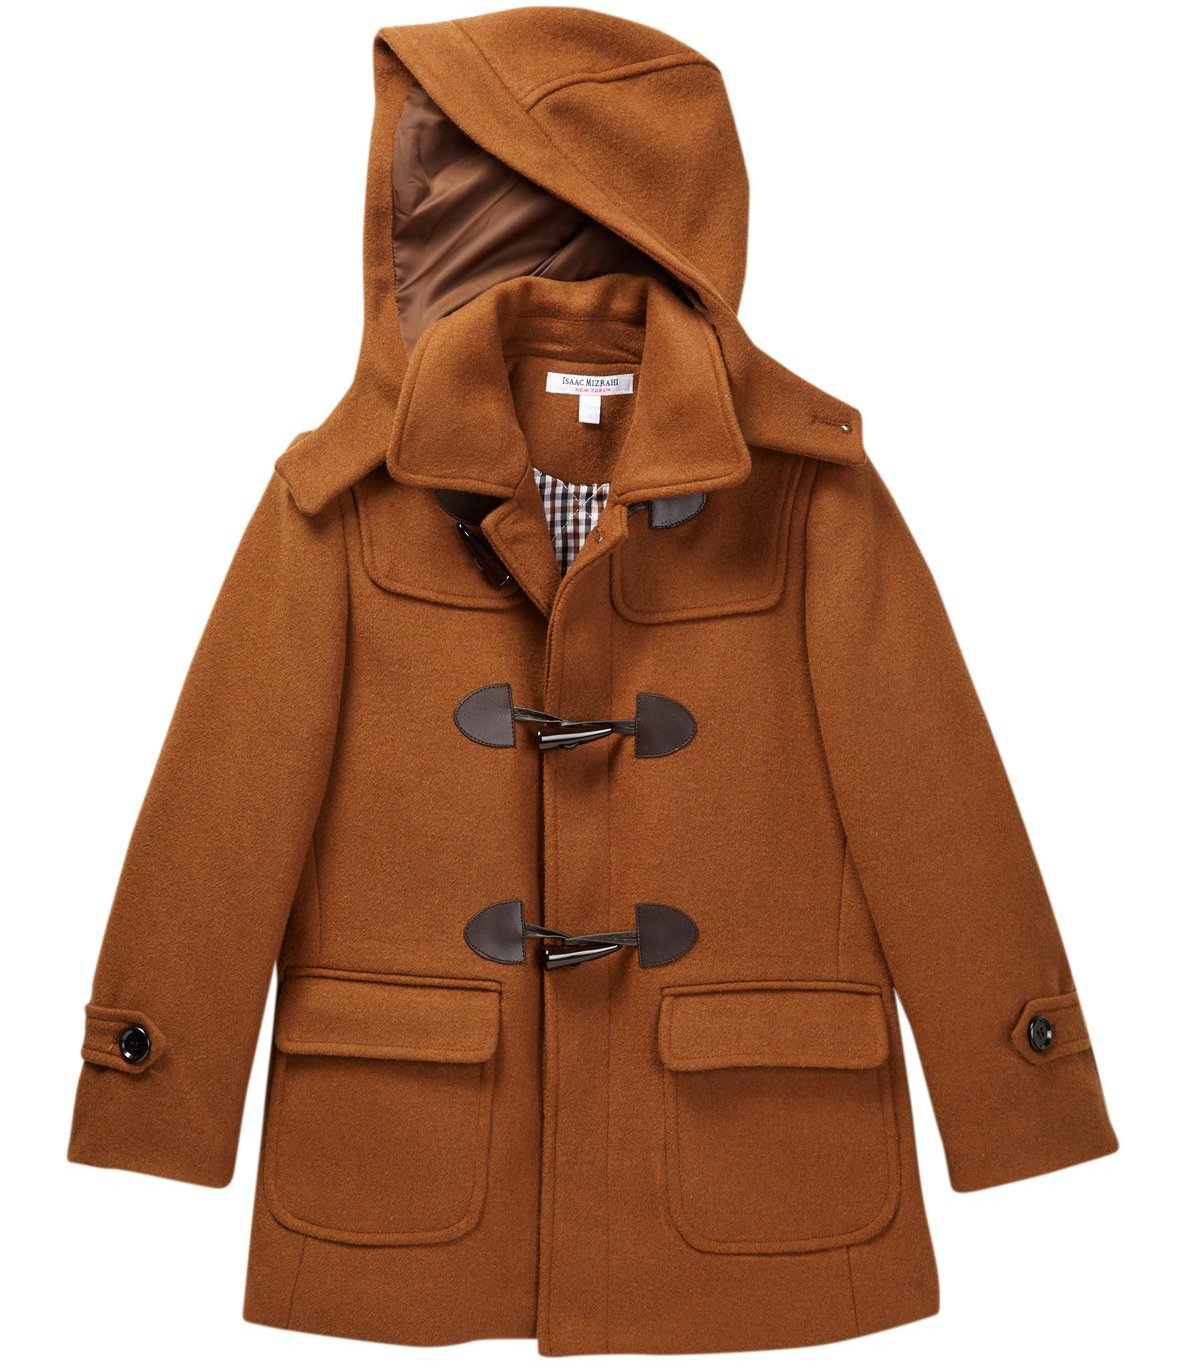 Isaac Mizrahi Boy's 2-20 Solid Wool Toggle Coat with Removble Hood - Colors CT1004